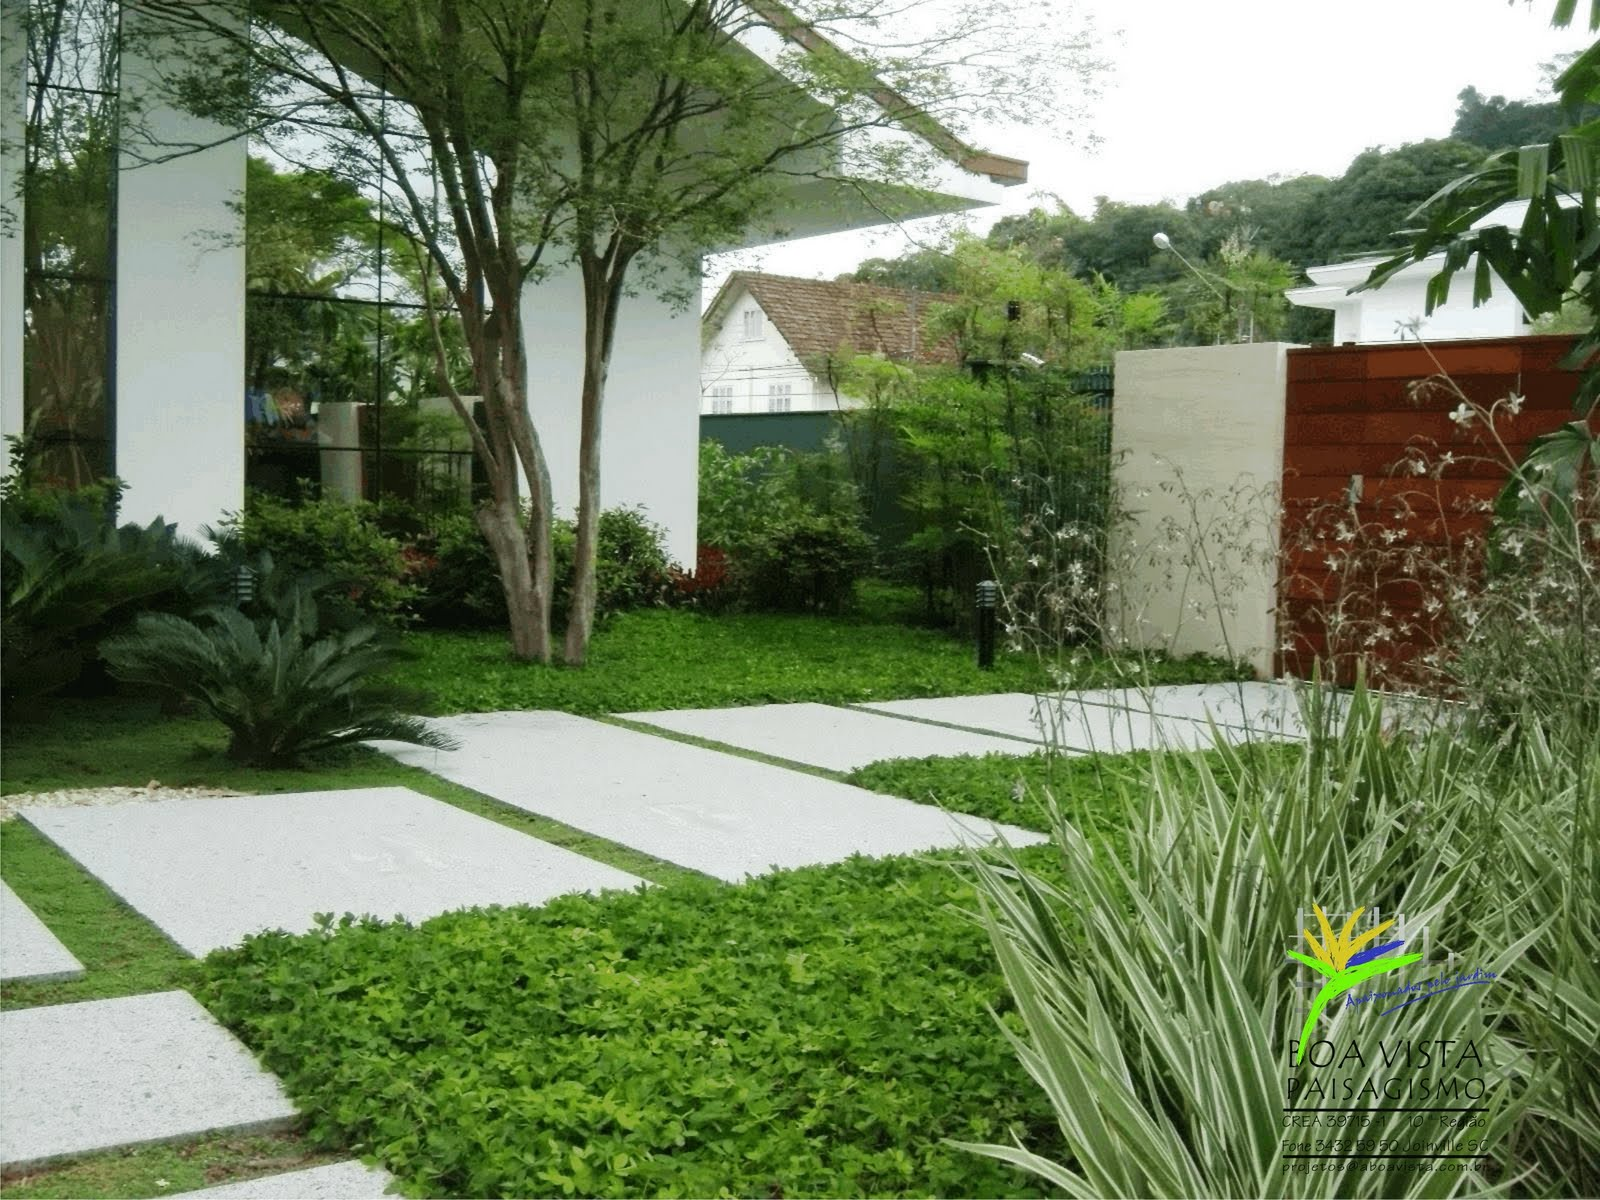 decoracao jardim residencial:Jardim Residencial Sem Muro Pictures to pin on Pinterest